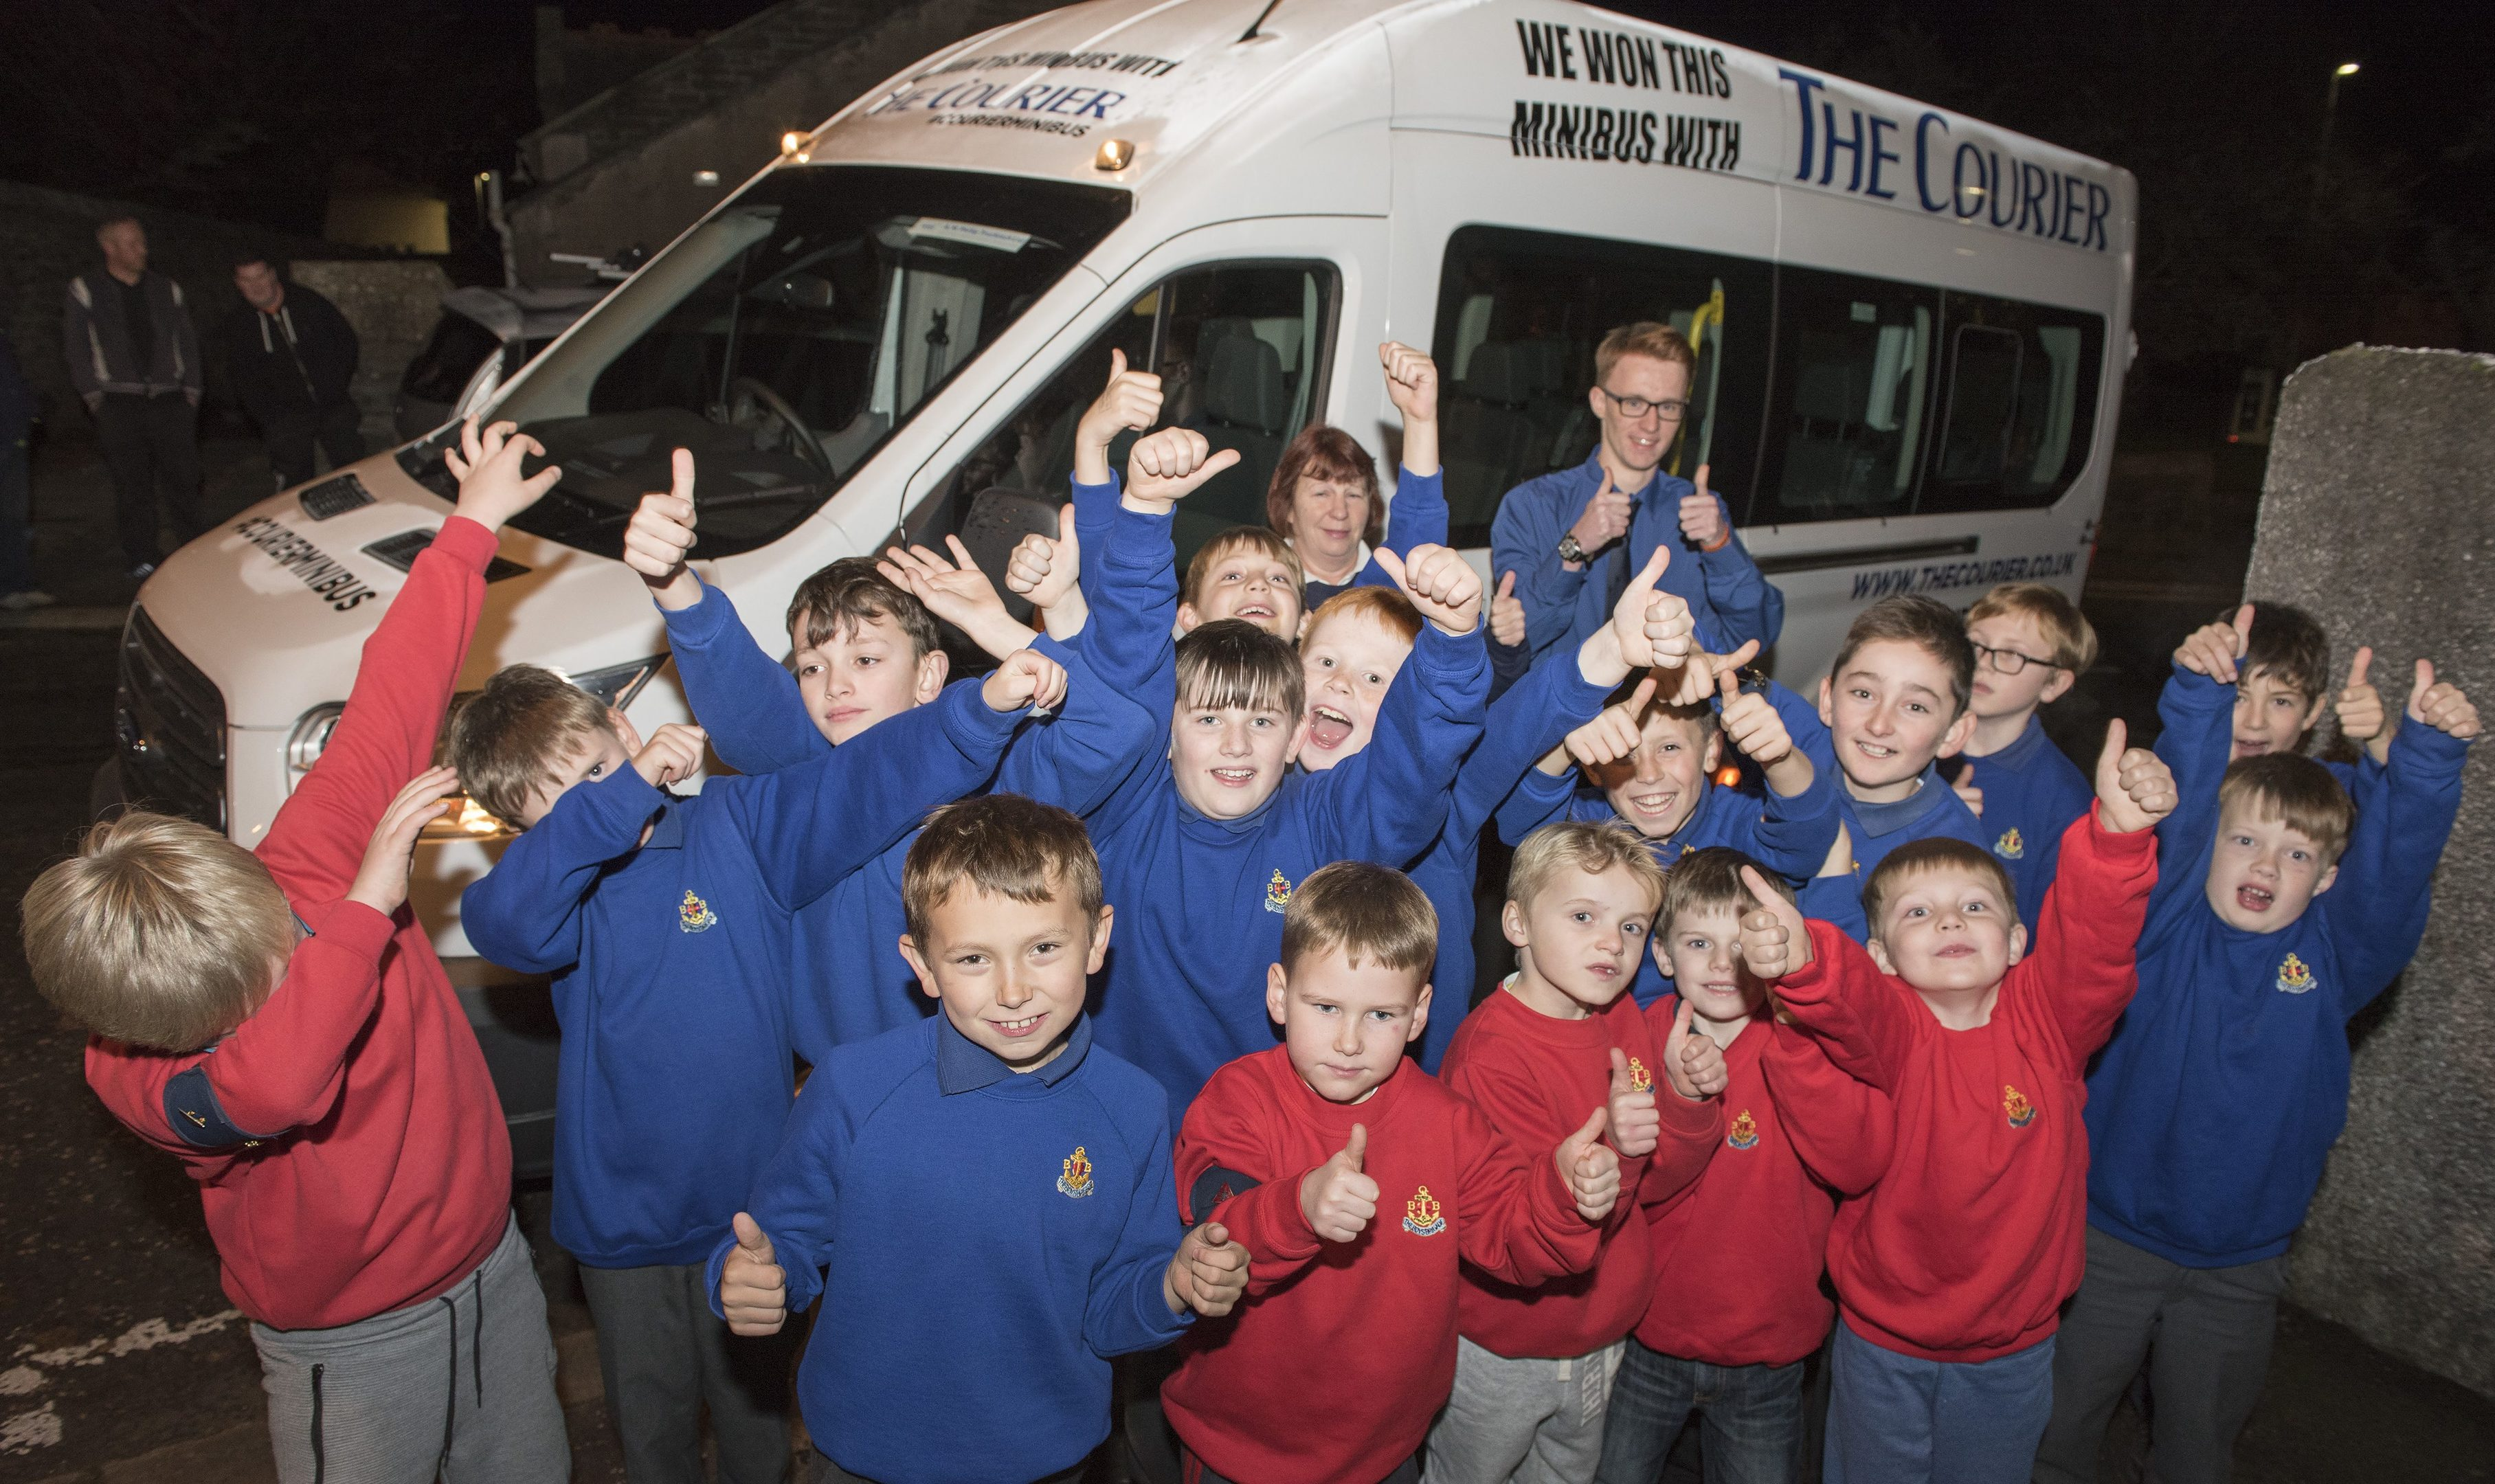 The 1st Monifieth Boys' Brigade Company win The Courier minibus.